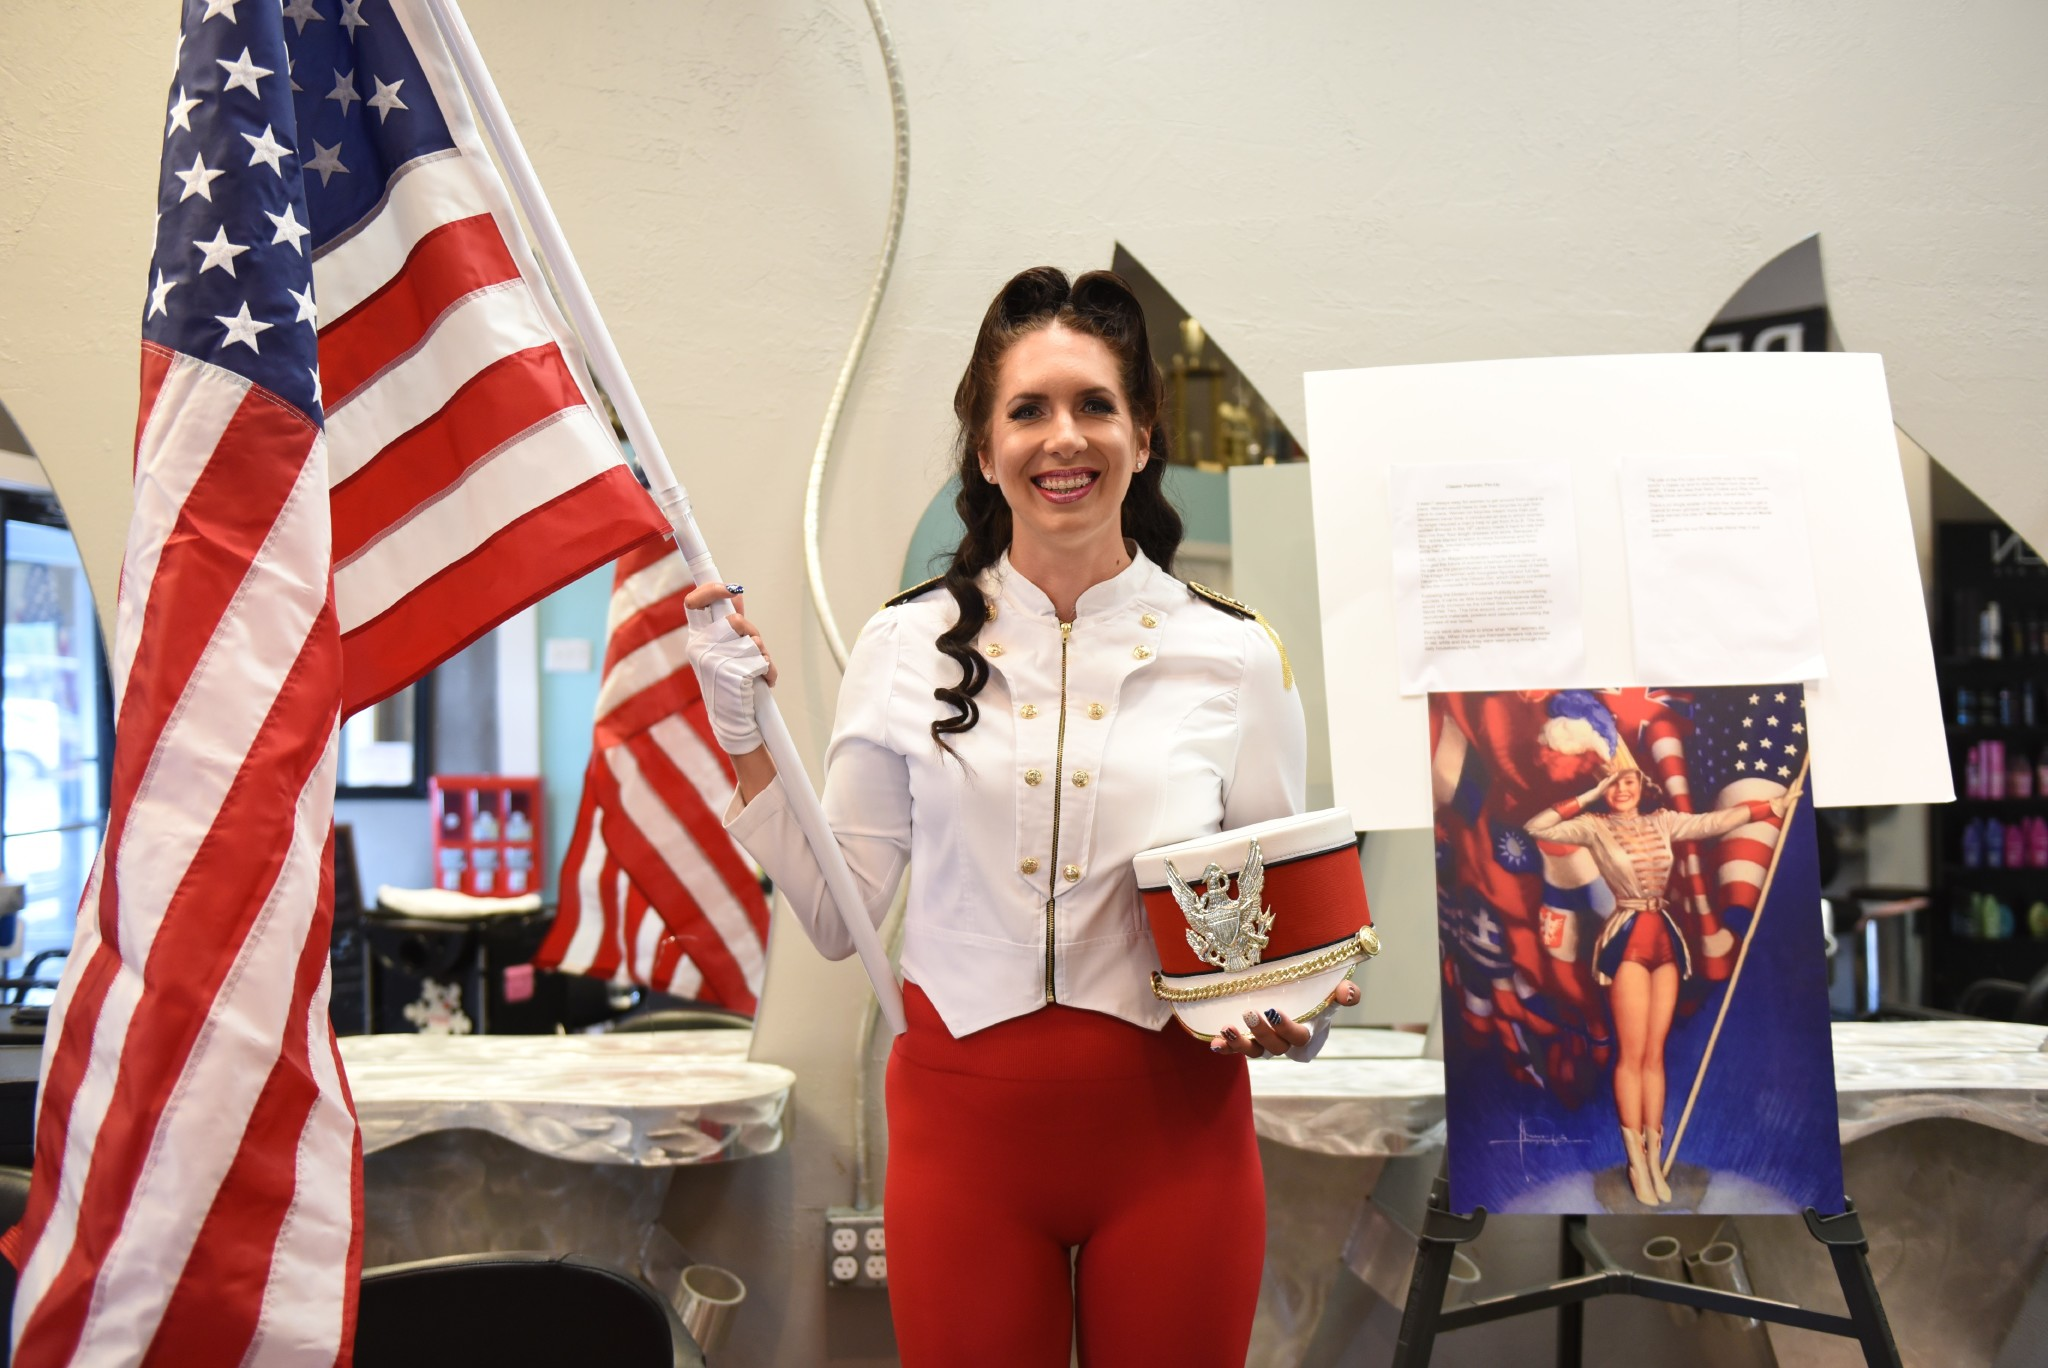 Woman dressed in white and red sailor outfit smiling while holding an American flag